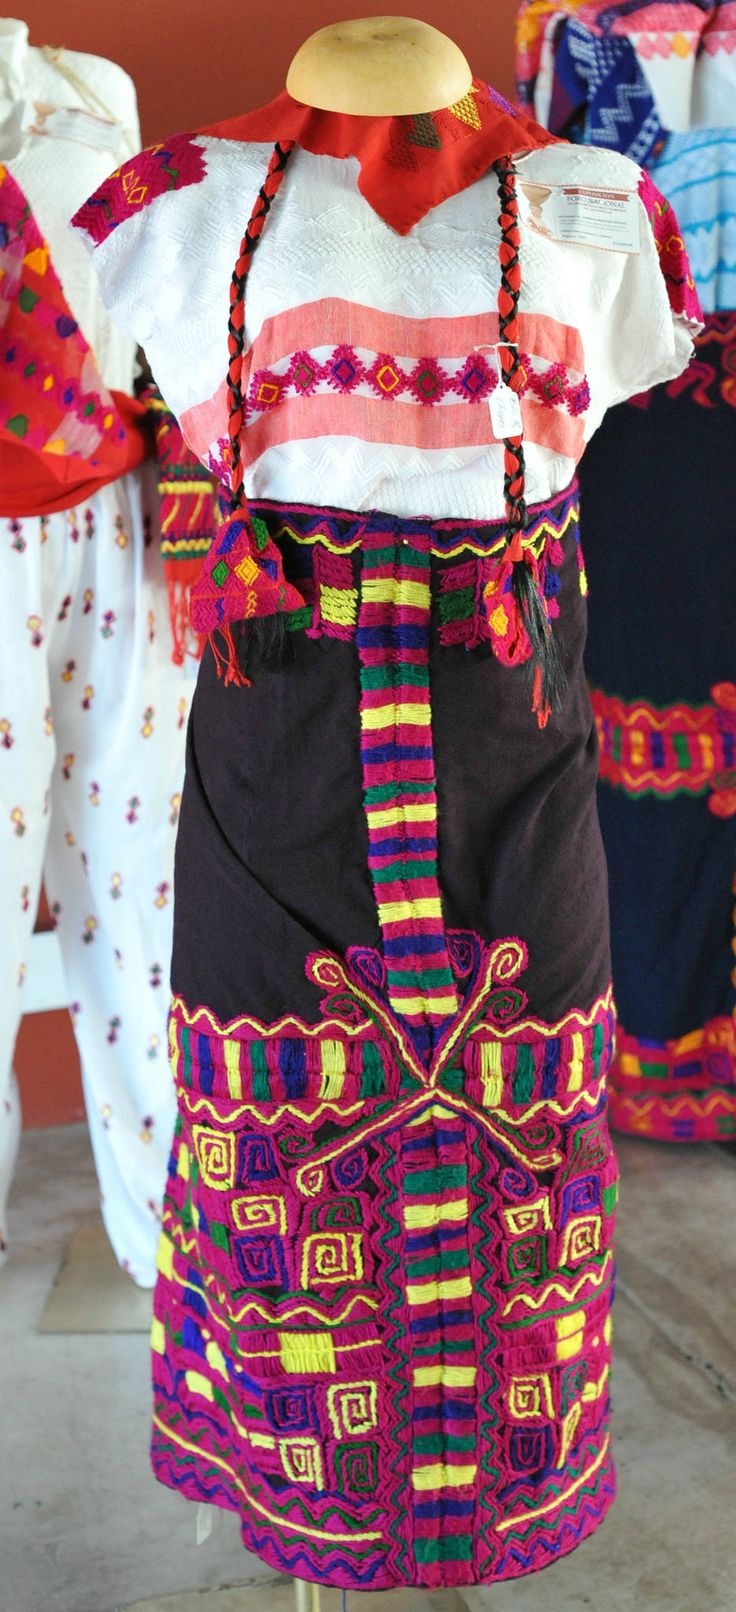 https://flic.kr/p/uTg3gr | Maya Textiles Chiapas Mexico | Huipil and embroidered skirt from Venustiano Carranza, a Maya community in Chiapas, Mexico. Made by Dominga Mendoza Vasquez. Part of the Grandes Maestros exhibition at the Oaxaca State Folk Art Museum (MEAPO)